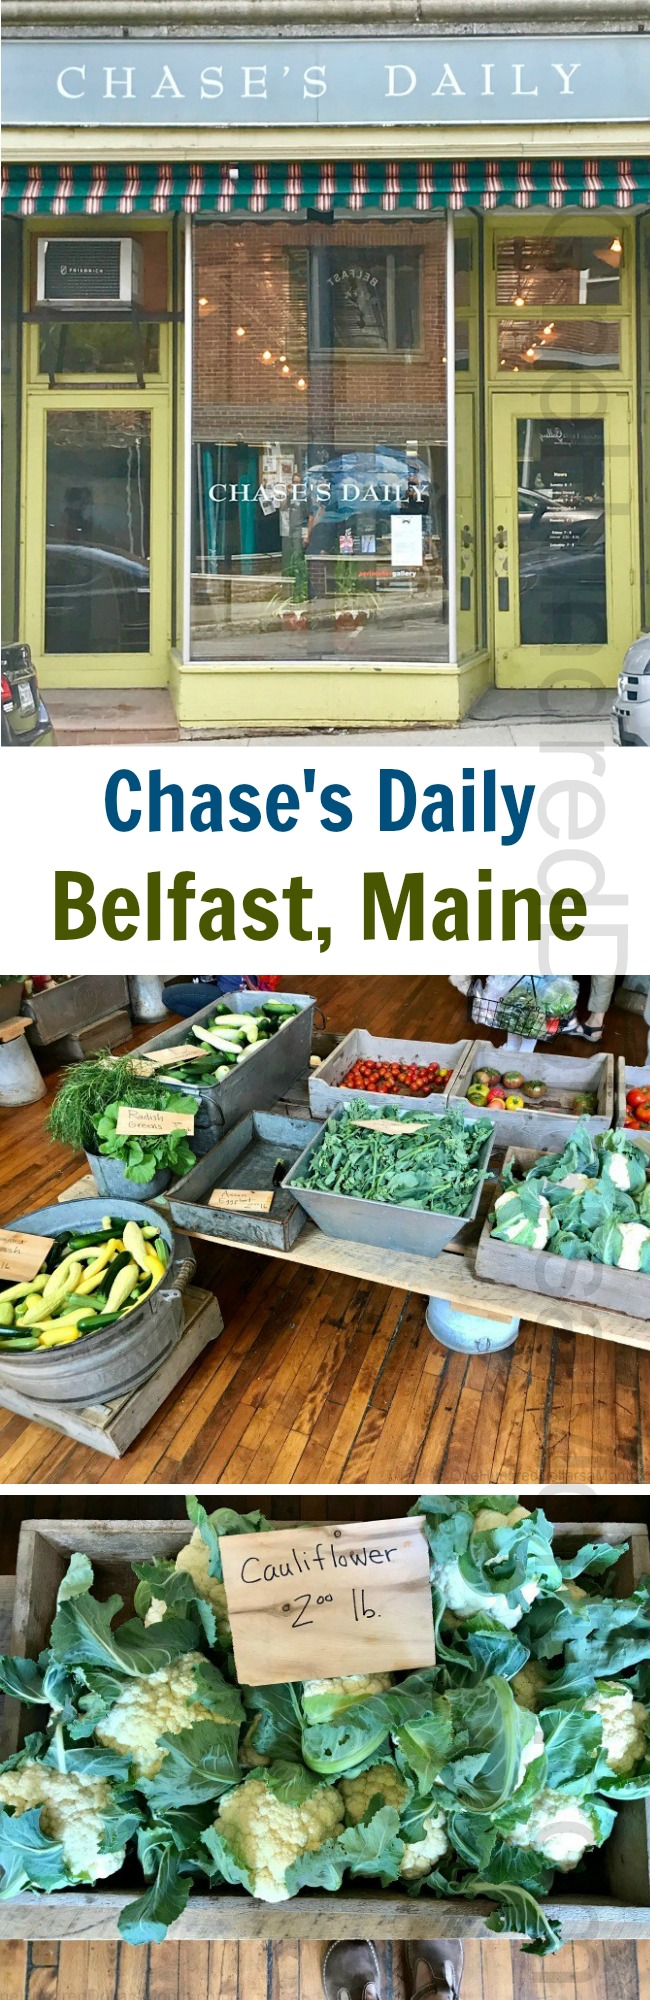 Chase's Daily in Belfast, Maine